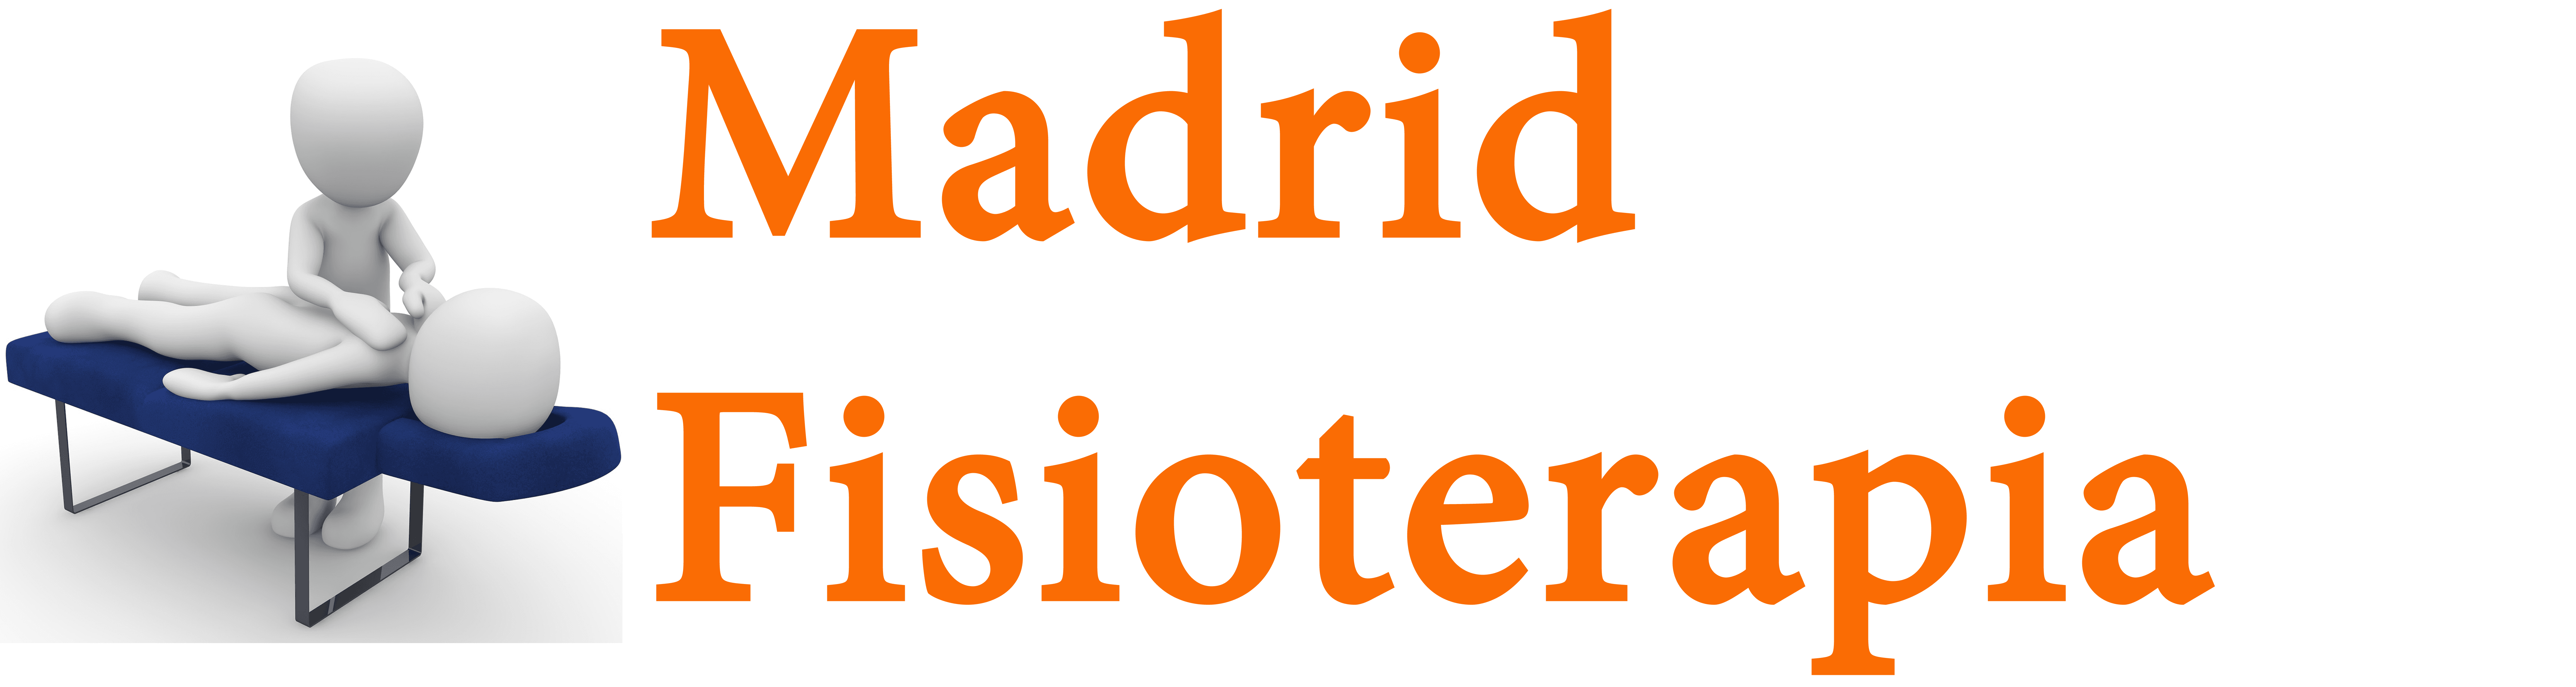 Madrid Fisioterapia